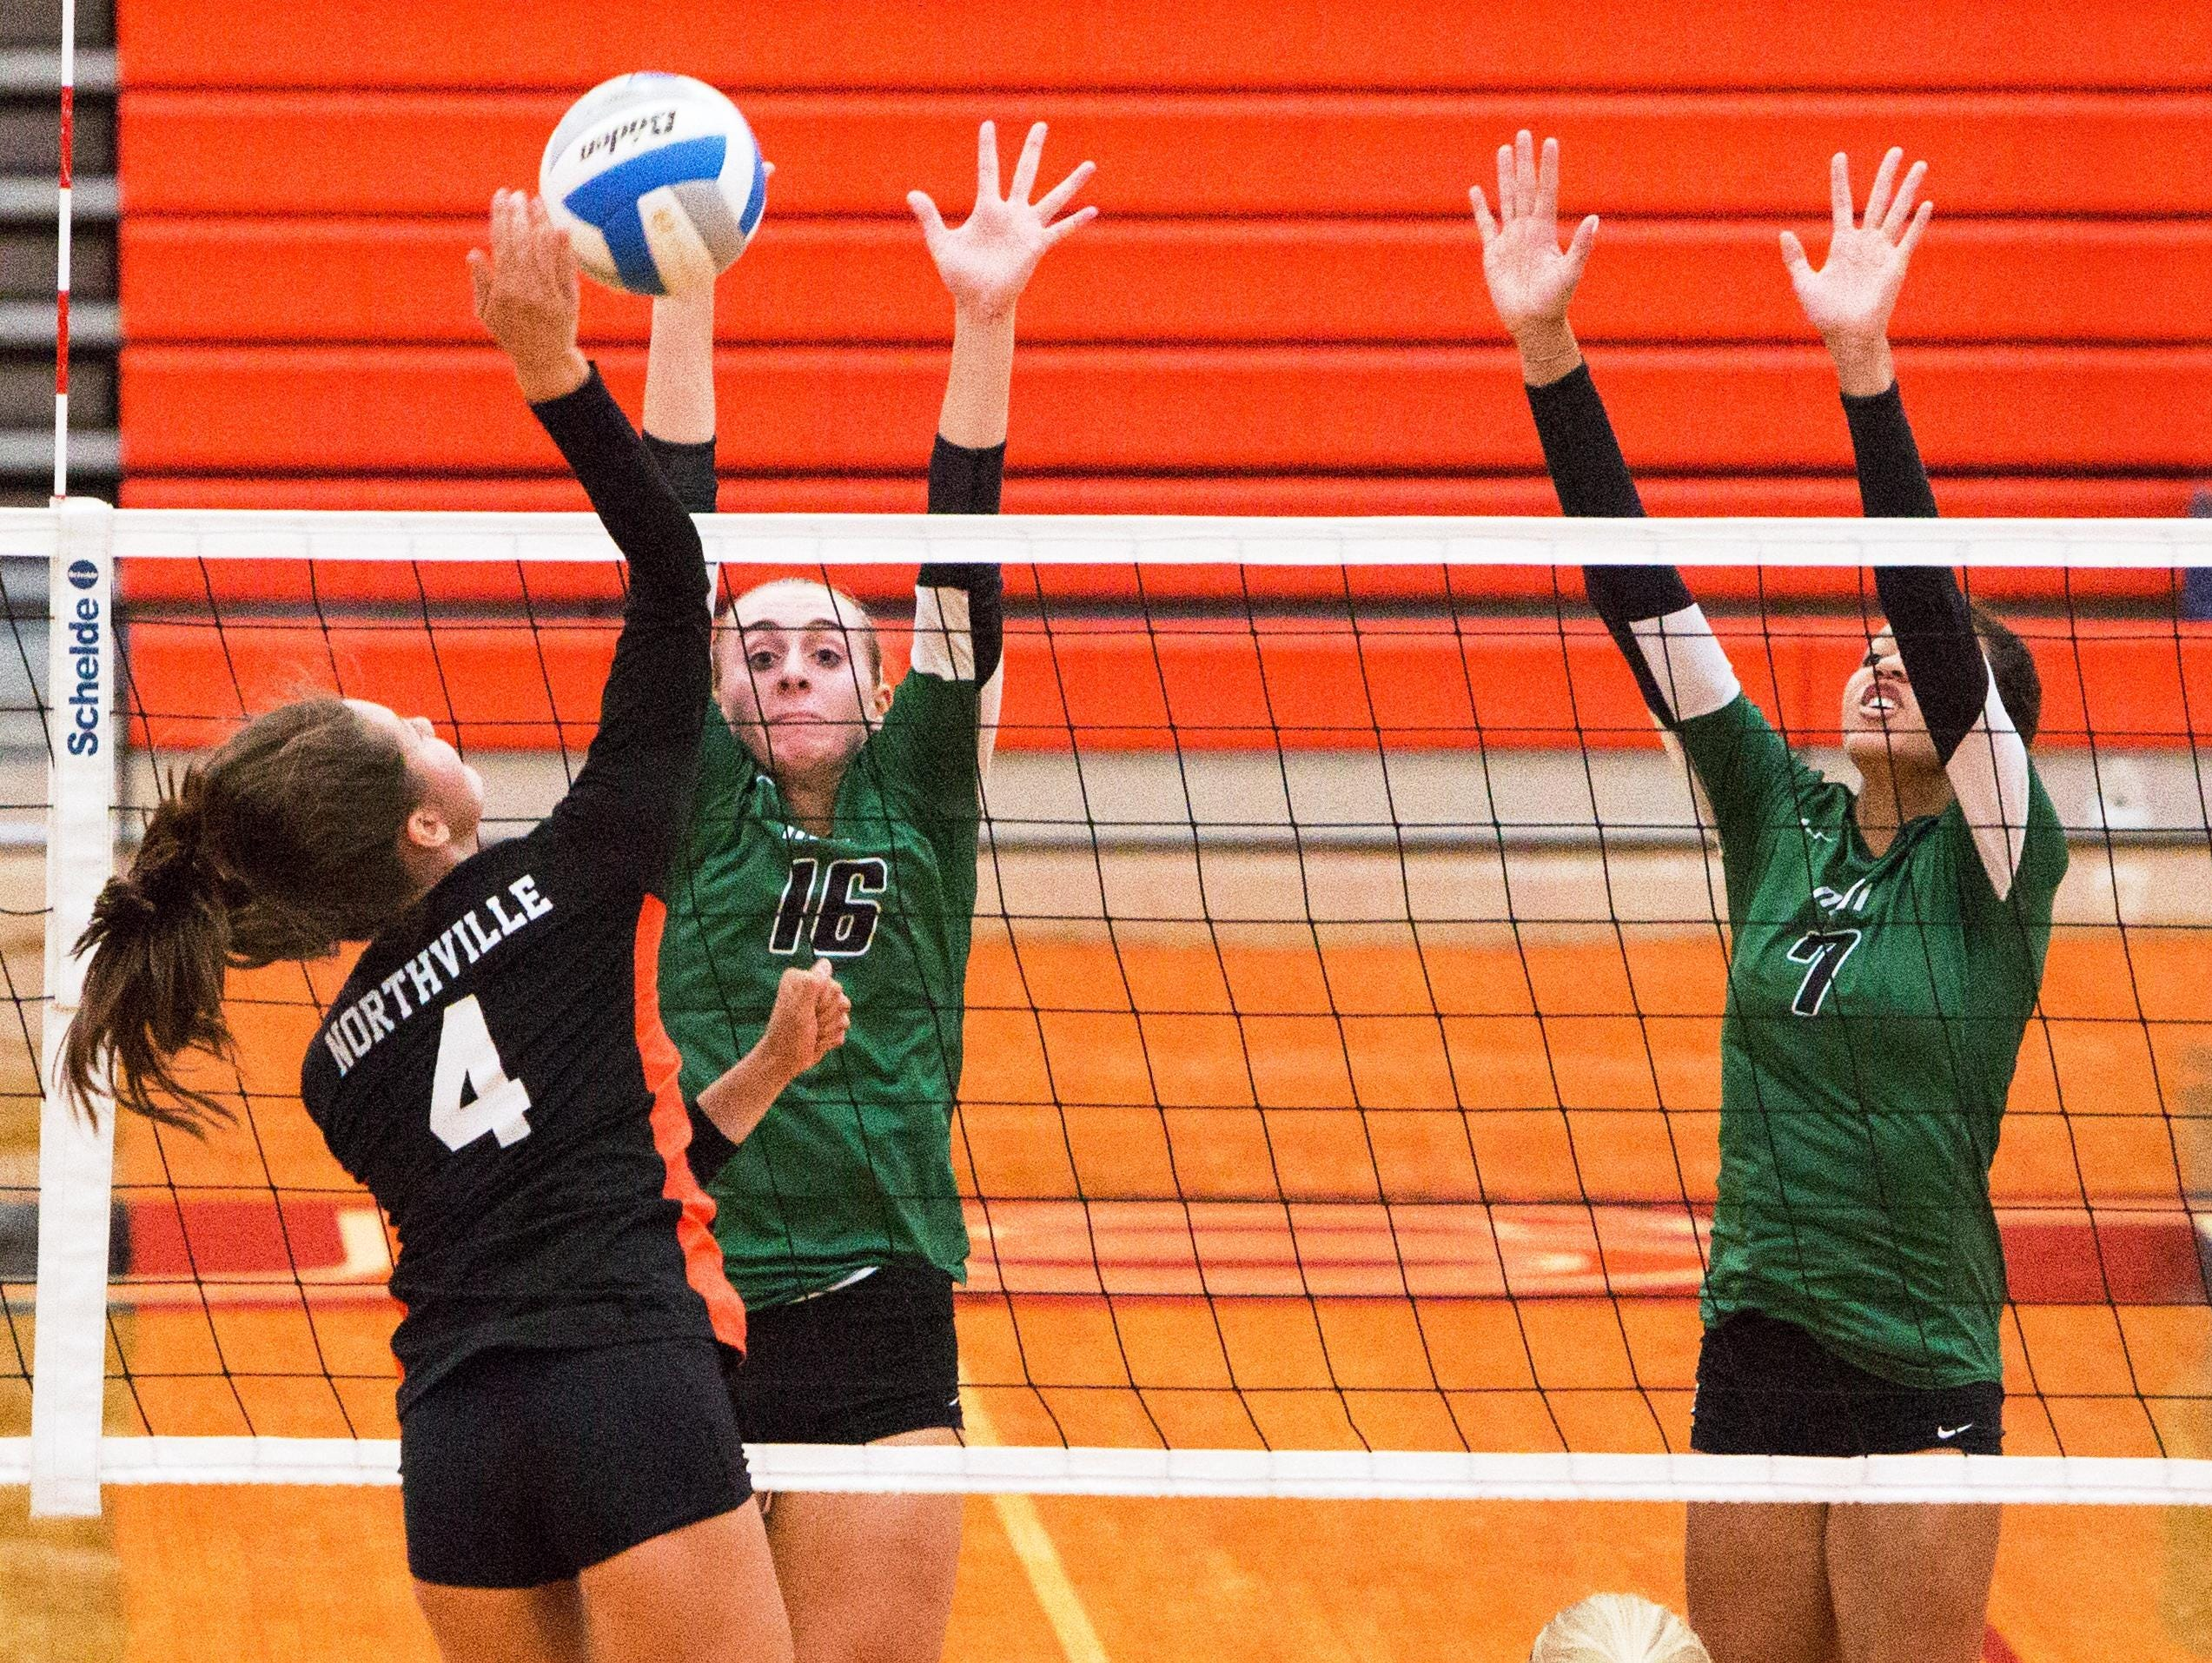 Northville's Emily Martin (4) tries to avoid the block set up by Novi's Ally Cummings (16) and Kathryn Ellison (7).